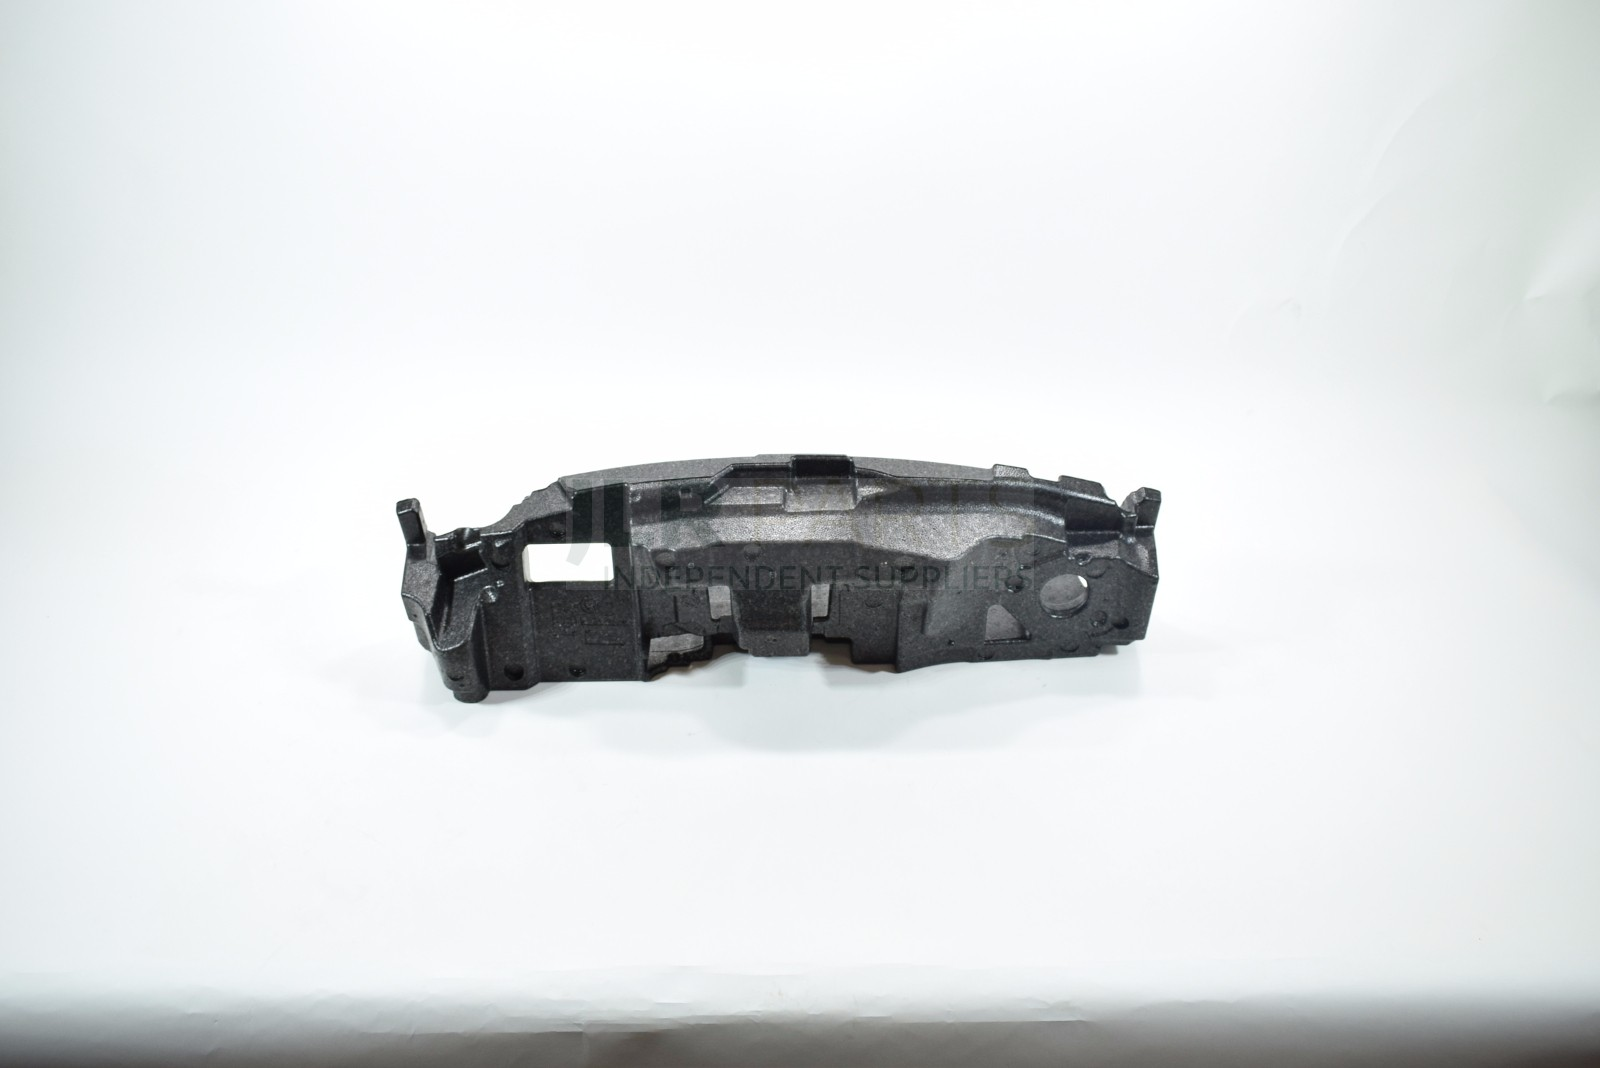 LAND ROVER DISCOVERY 2 REAR DOOR SPARE WHEEL CARRIER ASR1579 PART